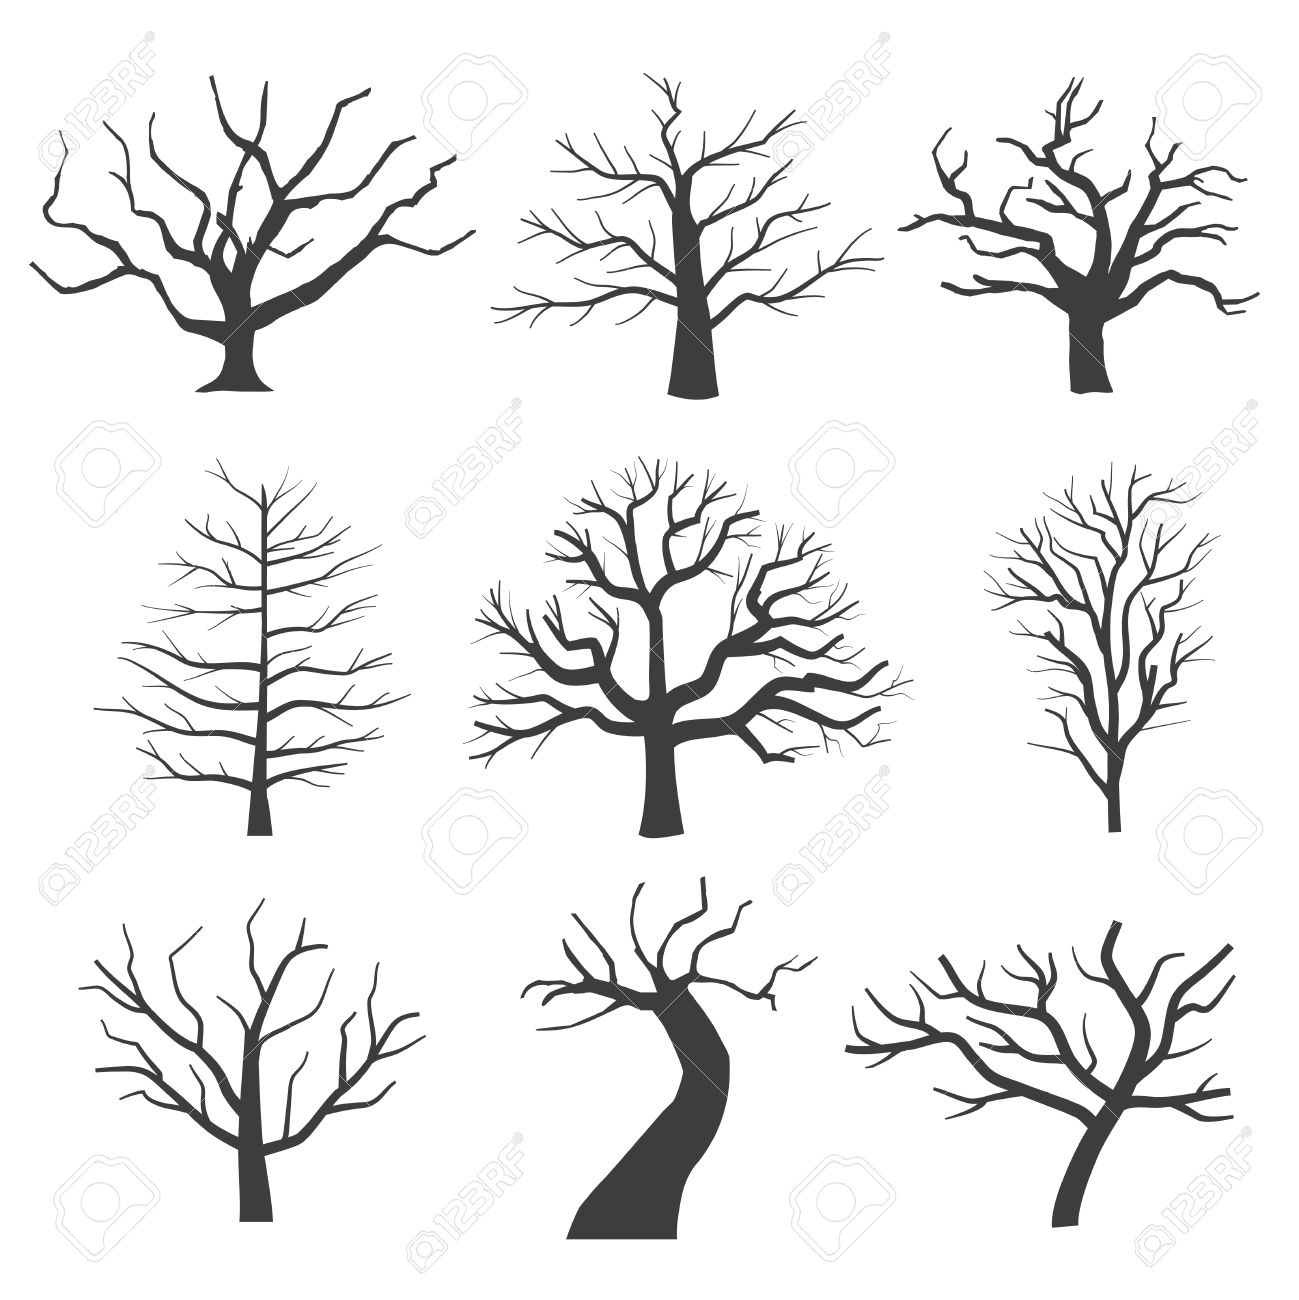 1299x1300 Collection Of Creepy Dead Tree Drawing High Quality, Free